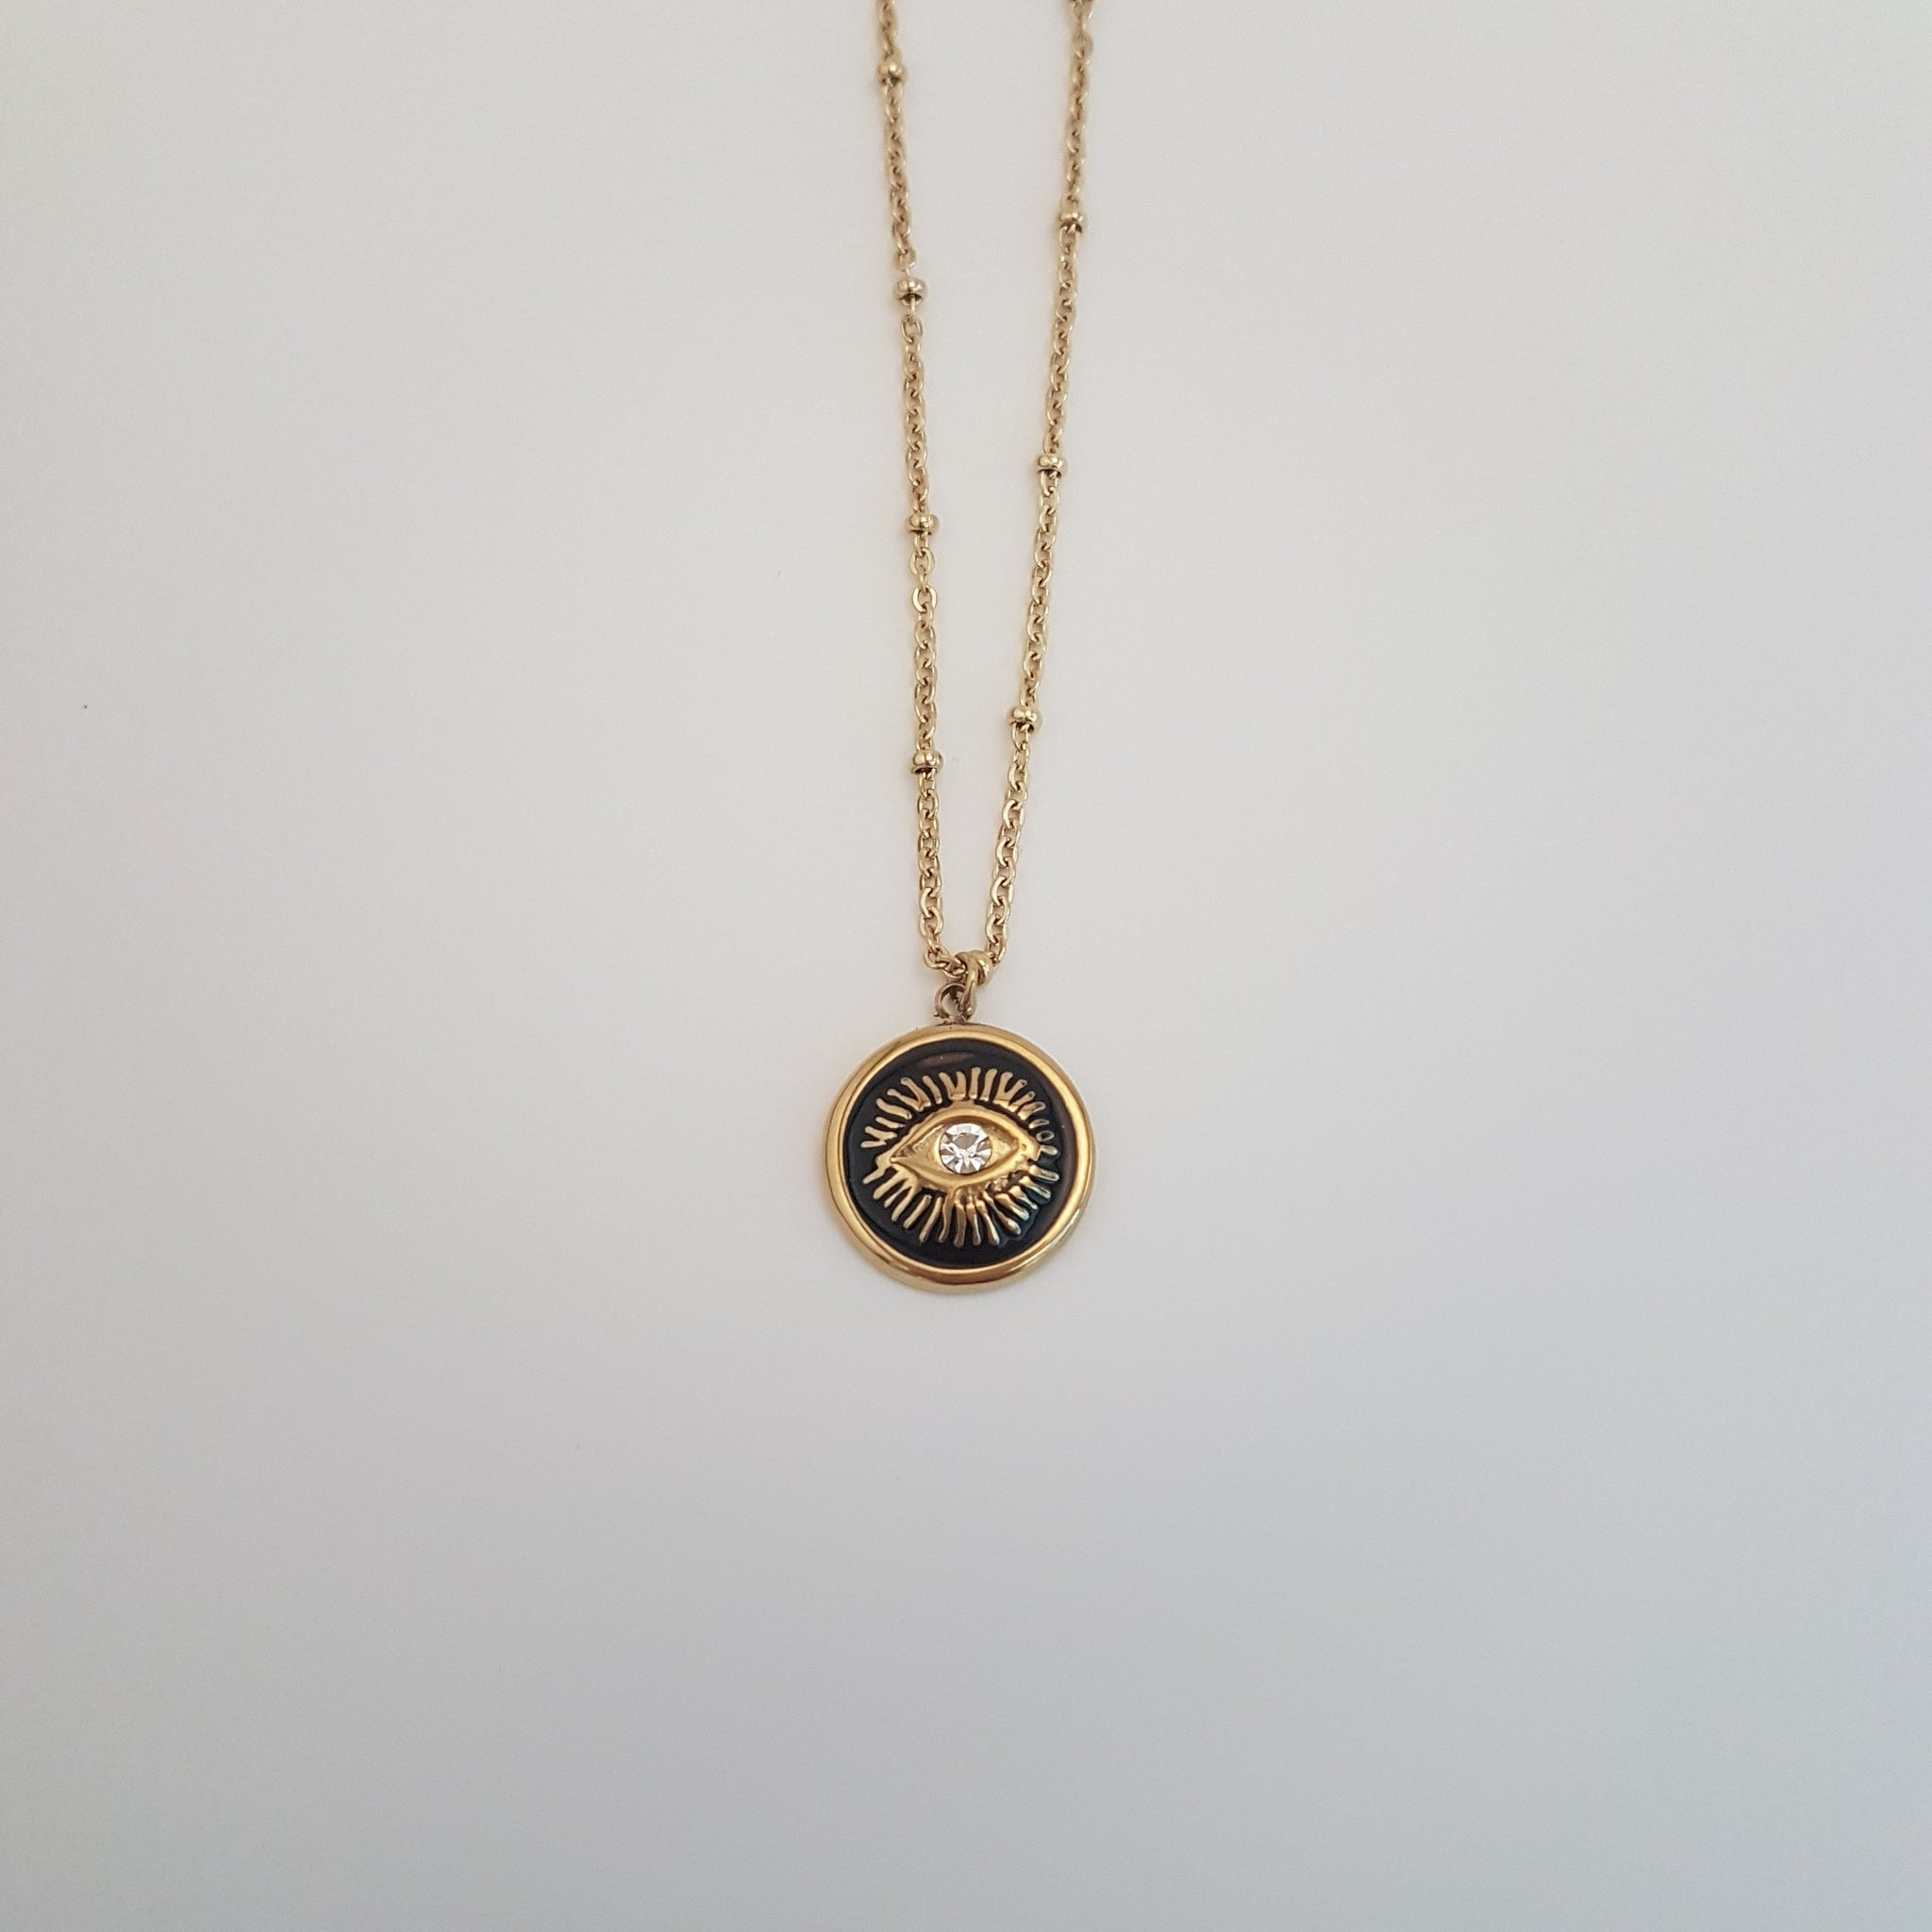 QUEOPS EYE SYMBOL NECKLACE